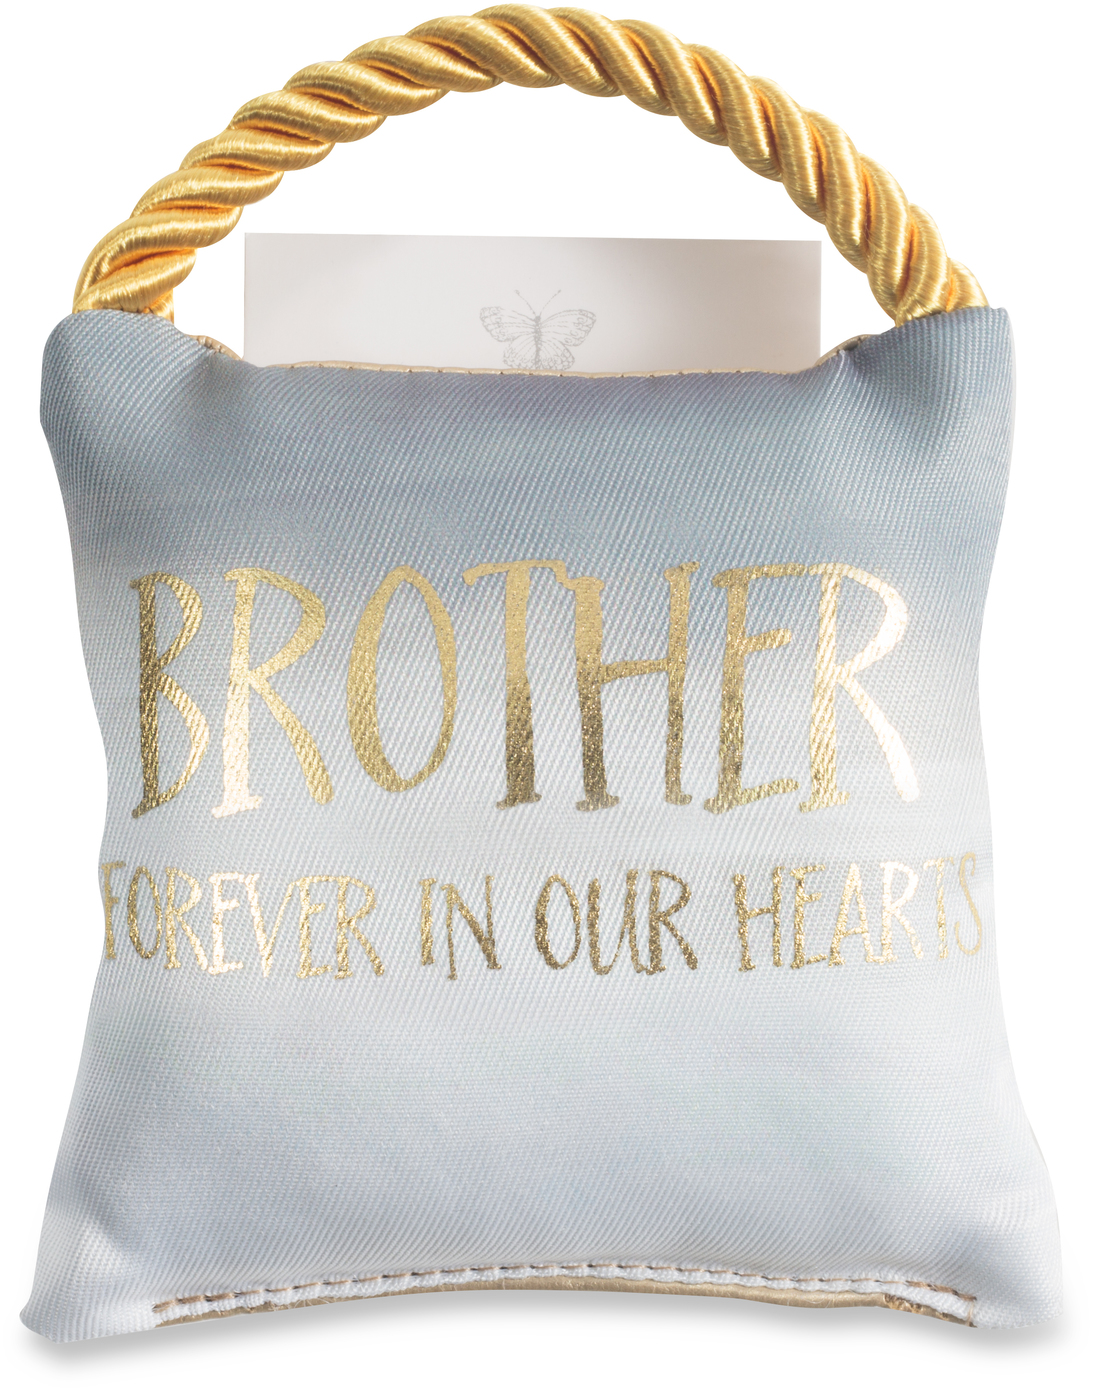 "Brother by Butterfly Whispers - Brother - 4.5"" Memorial Pocket Pillow"